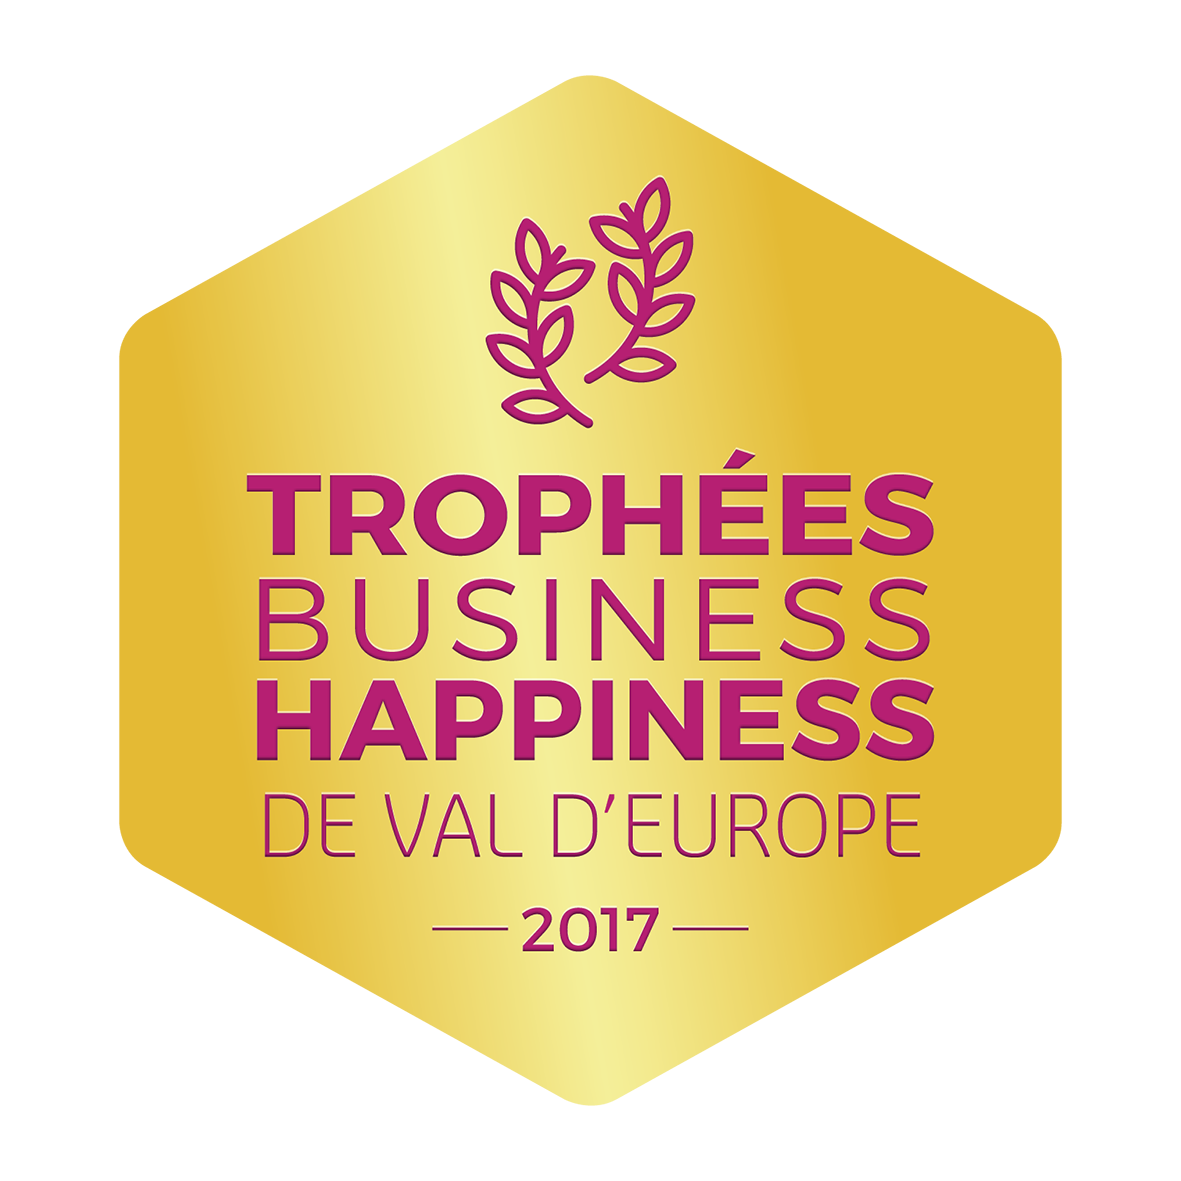 Les Trophées Business Happiness de Val d'Europe